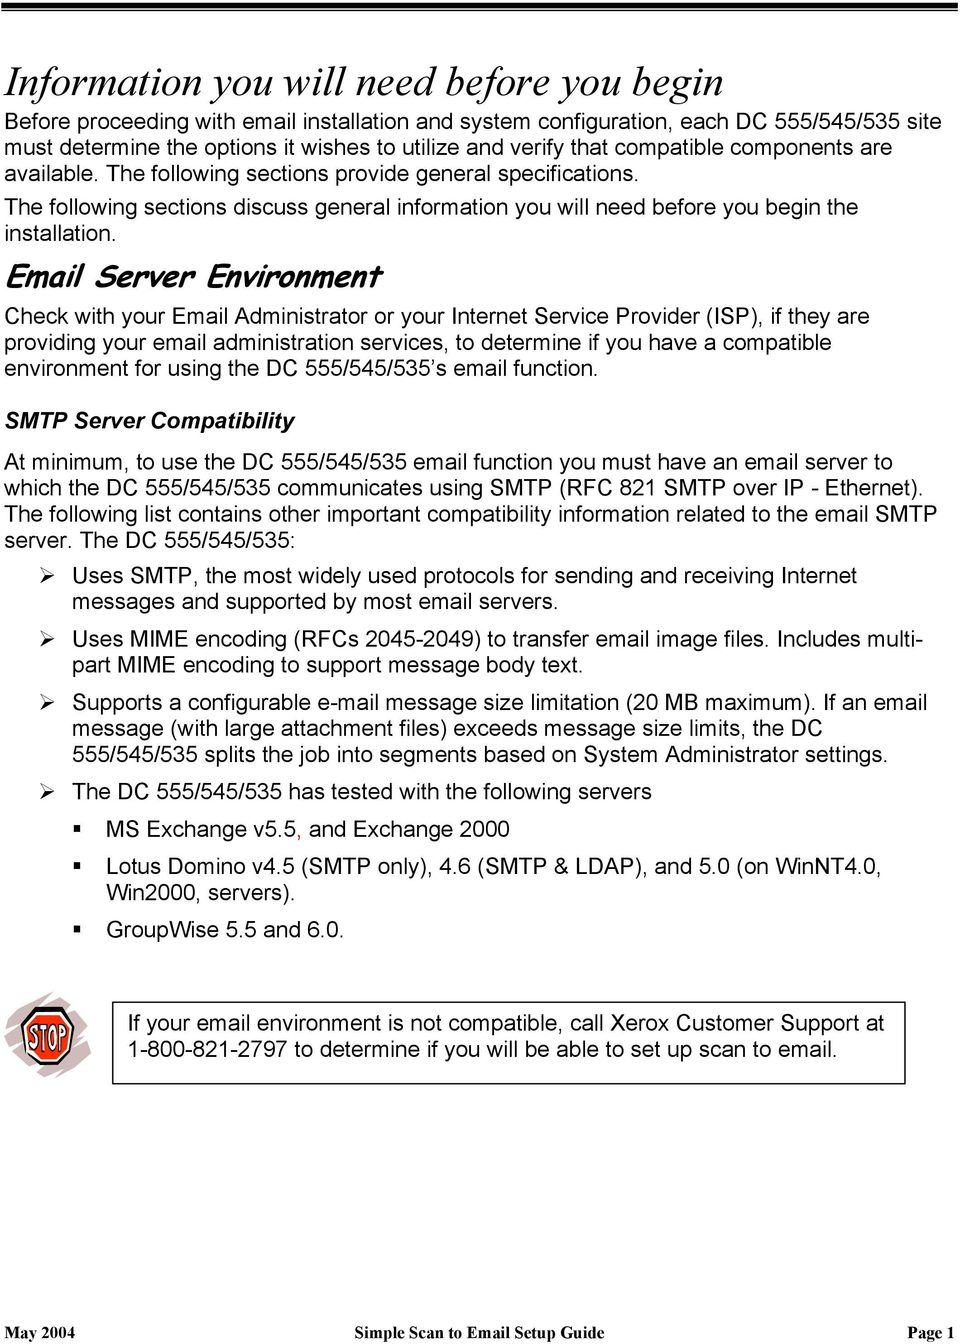 Email Server Environment Check with your Email Administrator or your Internet Service Provider (ISP), if they are providing your email administration services, to determine if you have a compatible